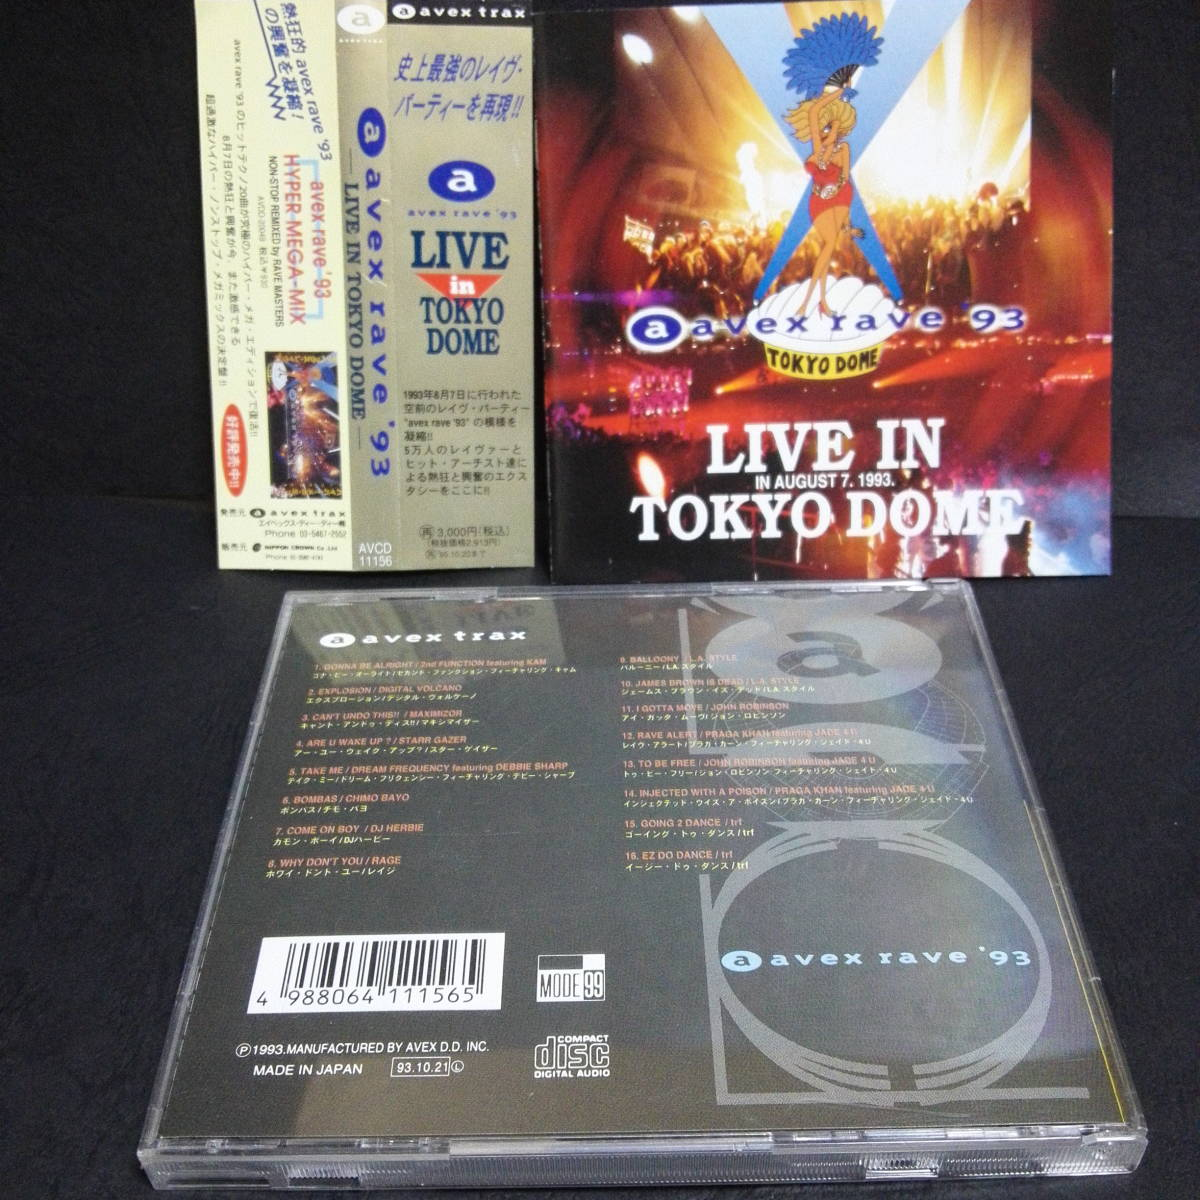 avex rave 93 LIVE in Tokyo Dome 帯付 全16曲LIVE 音源CD ジュリアナテクノ イタロ 90s DISCO JHON ROBINSON trf Maximizor L.A.STYLE_画像1